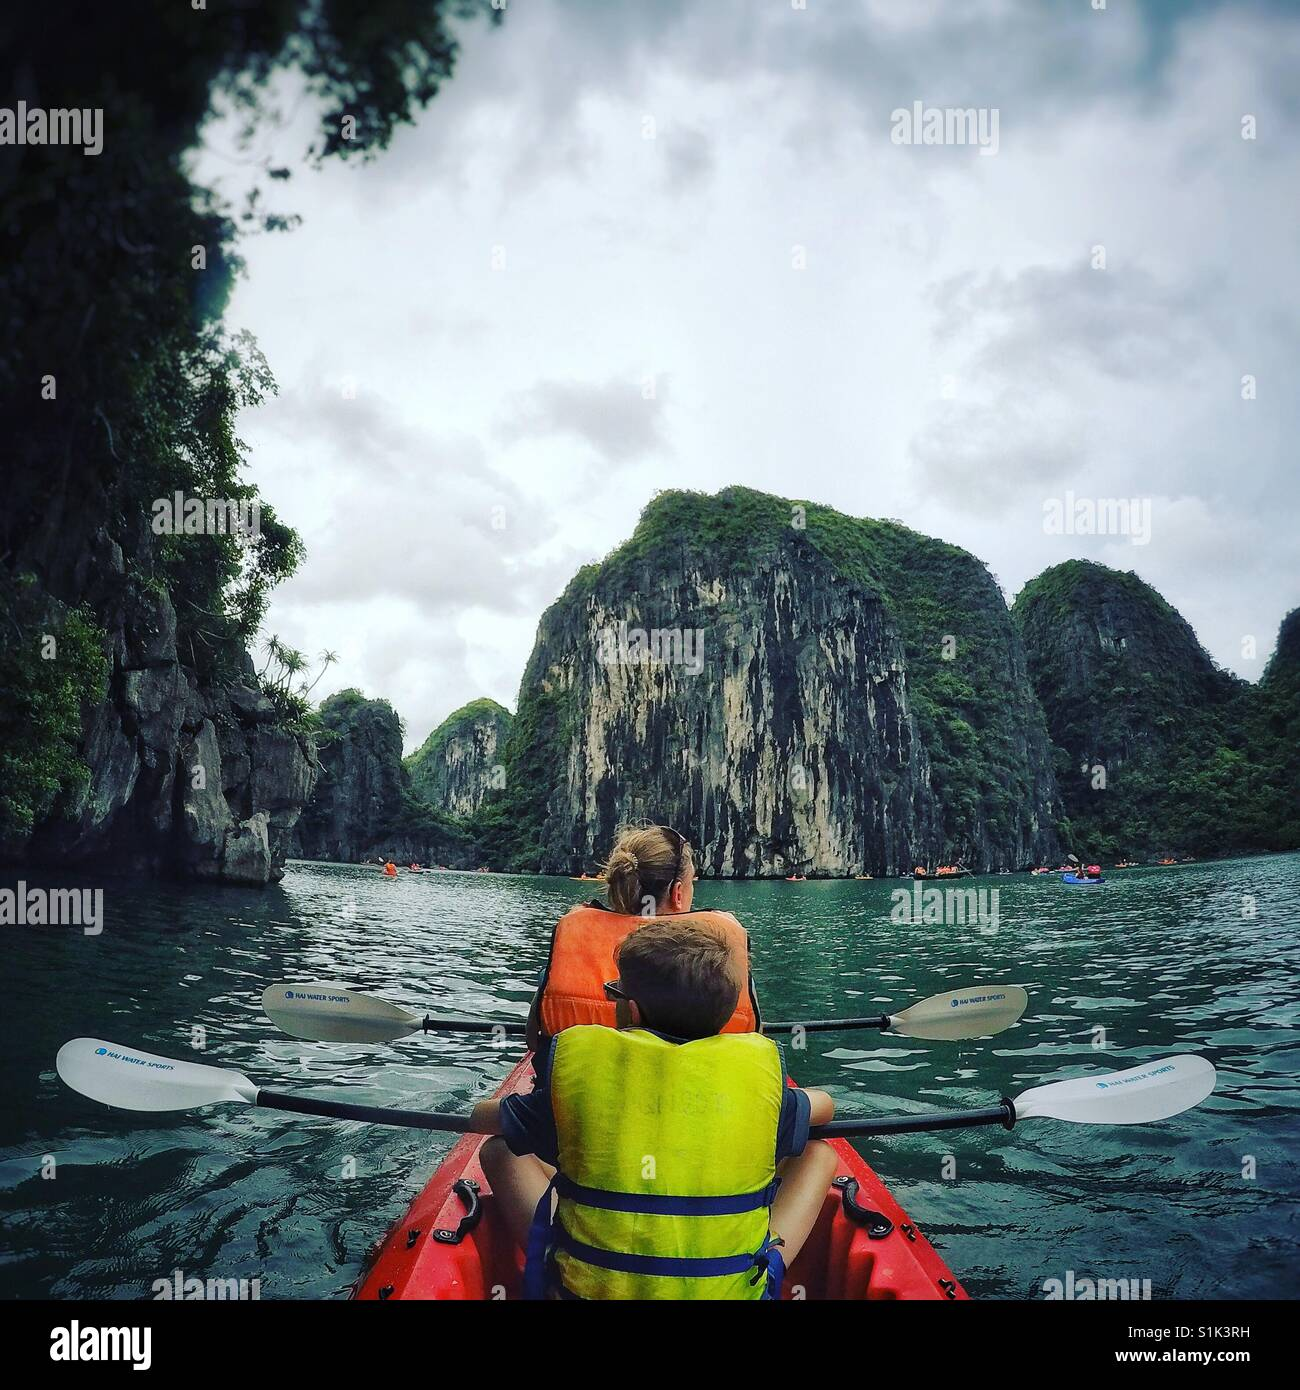 A family of an adult and child kayaking in the emerald waters of the Halong Bay in Vietnam. Limestone peaks topped - Stock Image